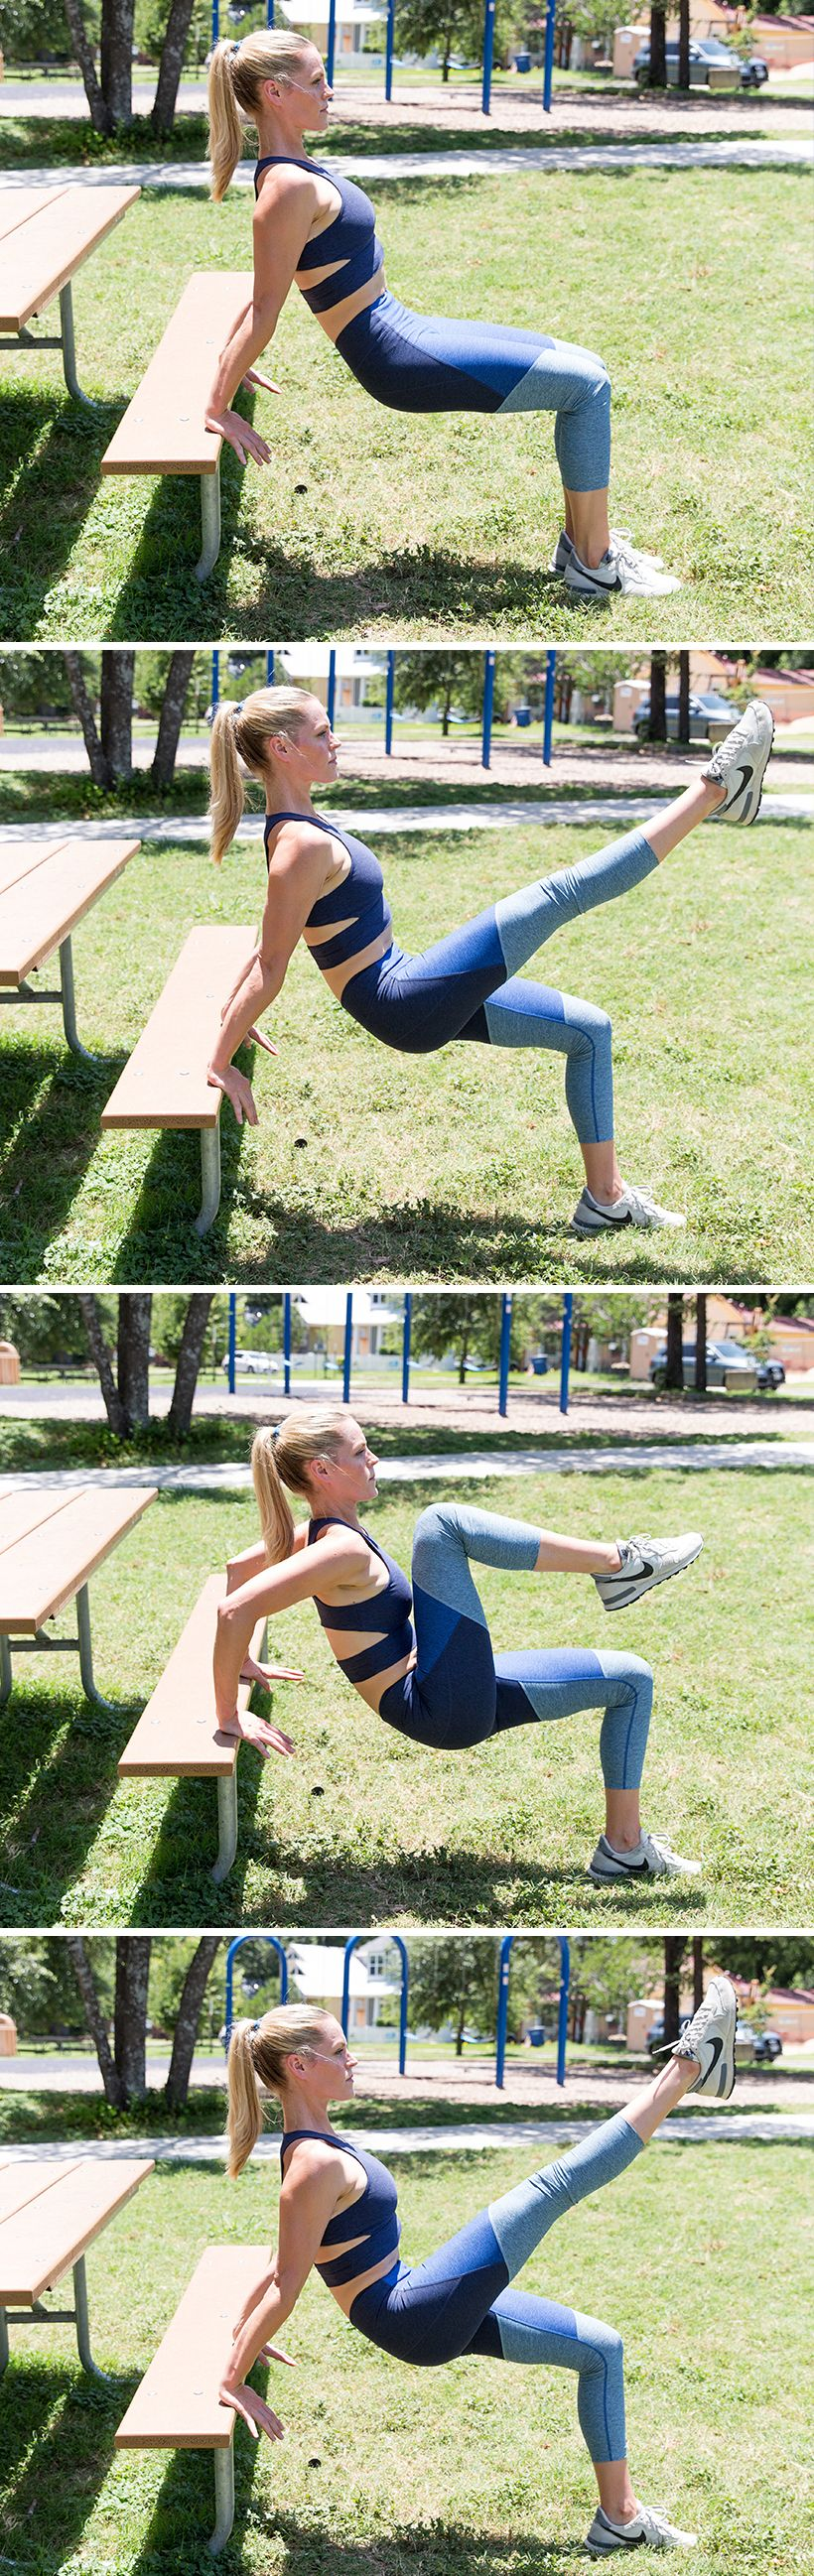 Communication on this topic: Playground Workout: Moves that Make Exercise Fun , playground-workout-moves-that-make-exercise-fun/